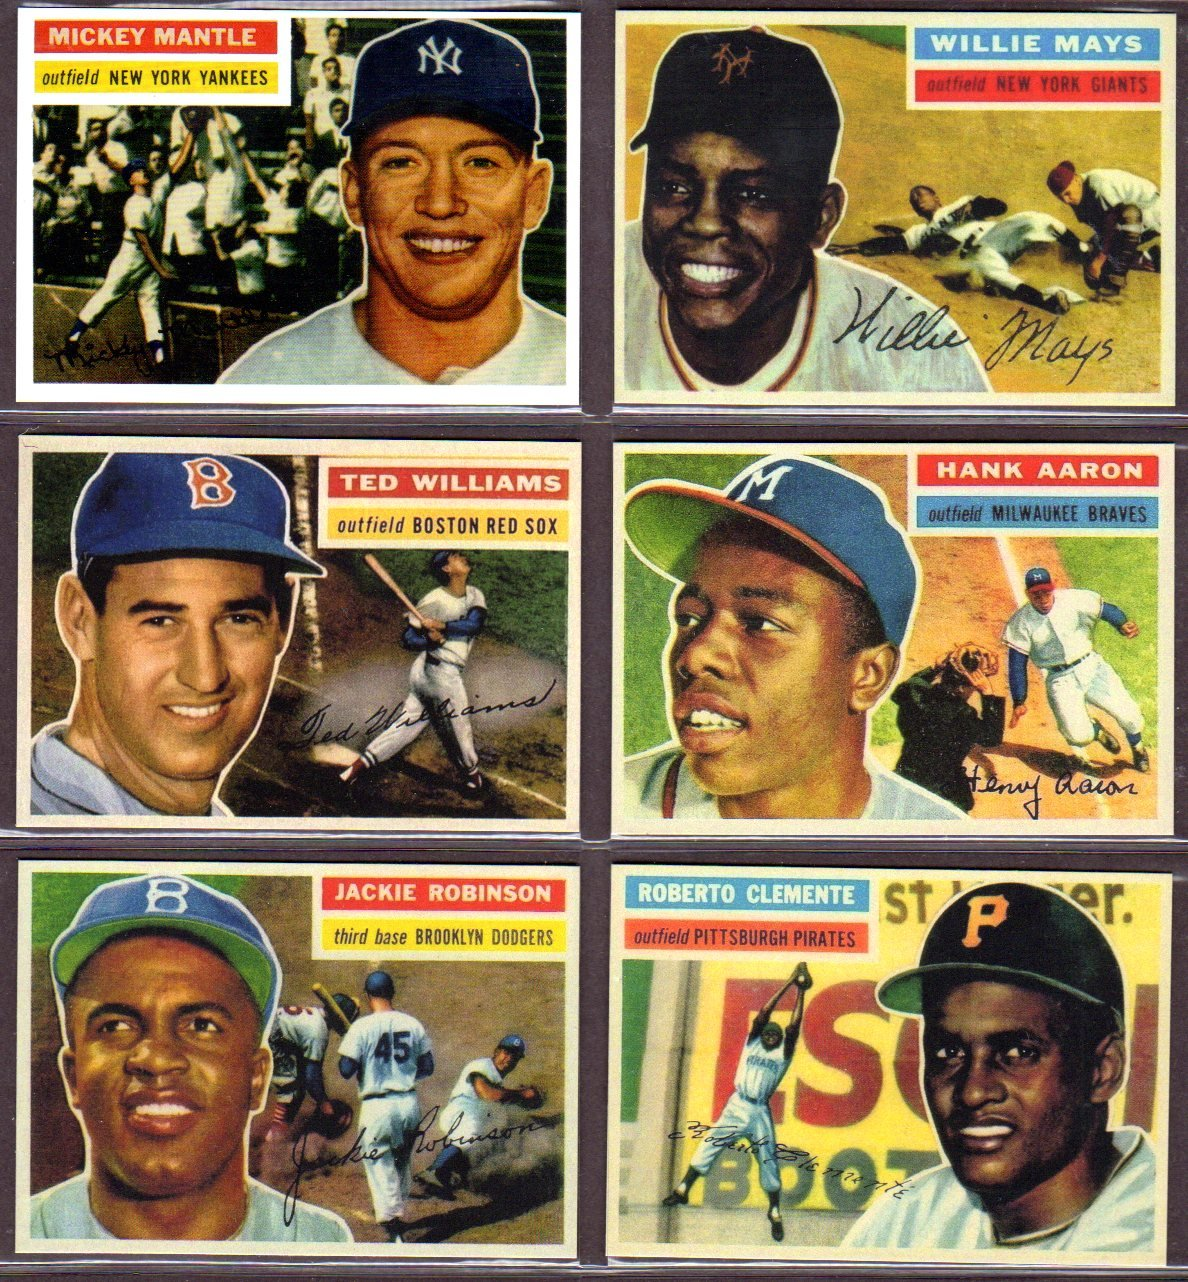 1956 (6) Card Topps Baseball Reprint Lot (Mickey Mantle) (Willie Mays) (Ted Williams) (Jackie Robinson) (Roberto Clemente) (Hank Aaron)